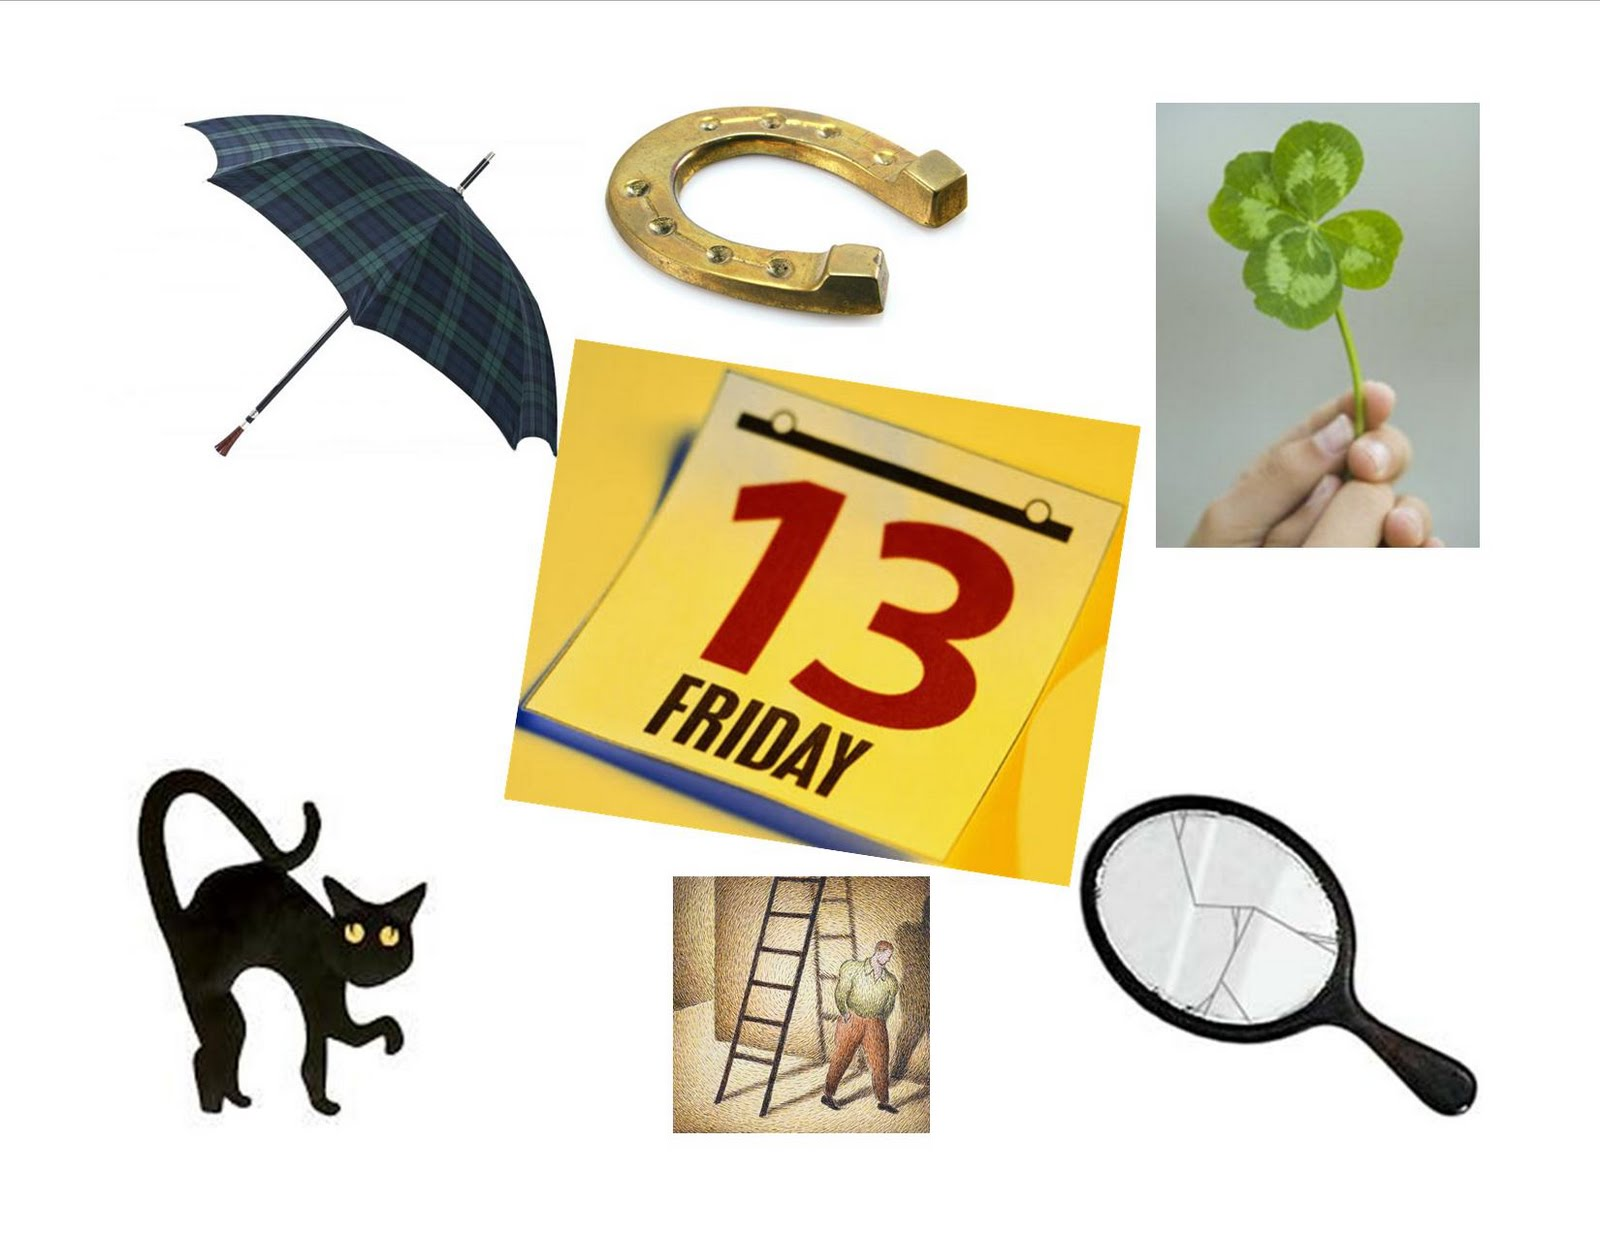 Friday 13 Clipart.